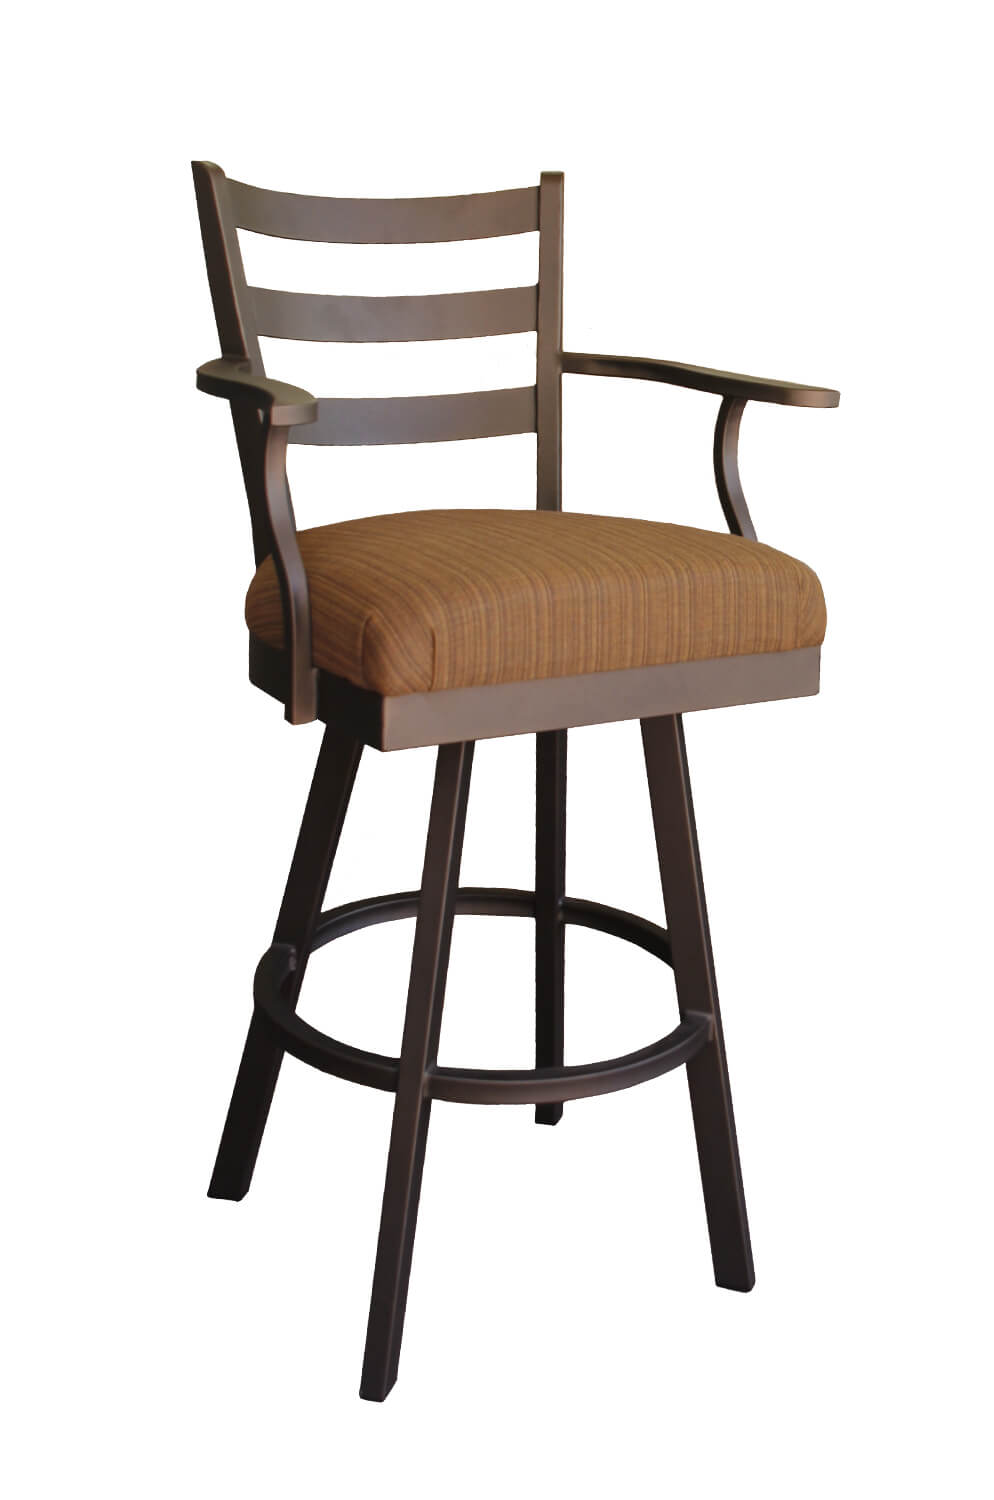 Callee's Claremont Outdoor Swivel Stool with Back and Arms